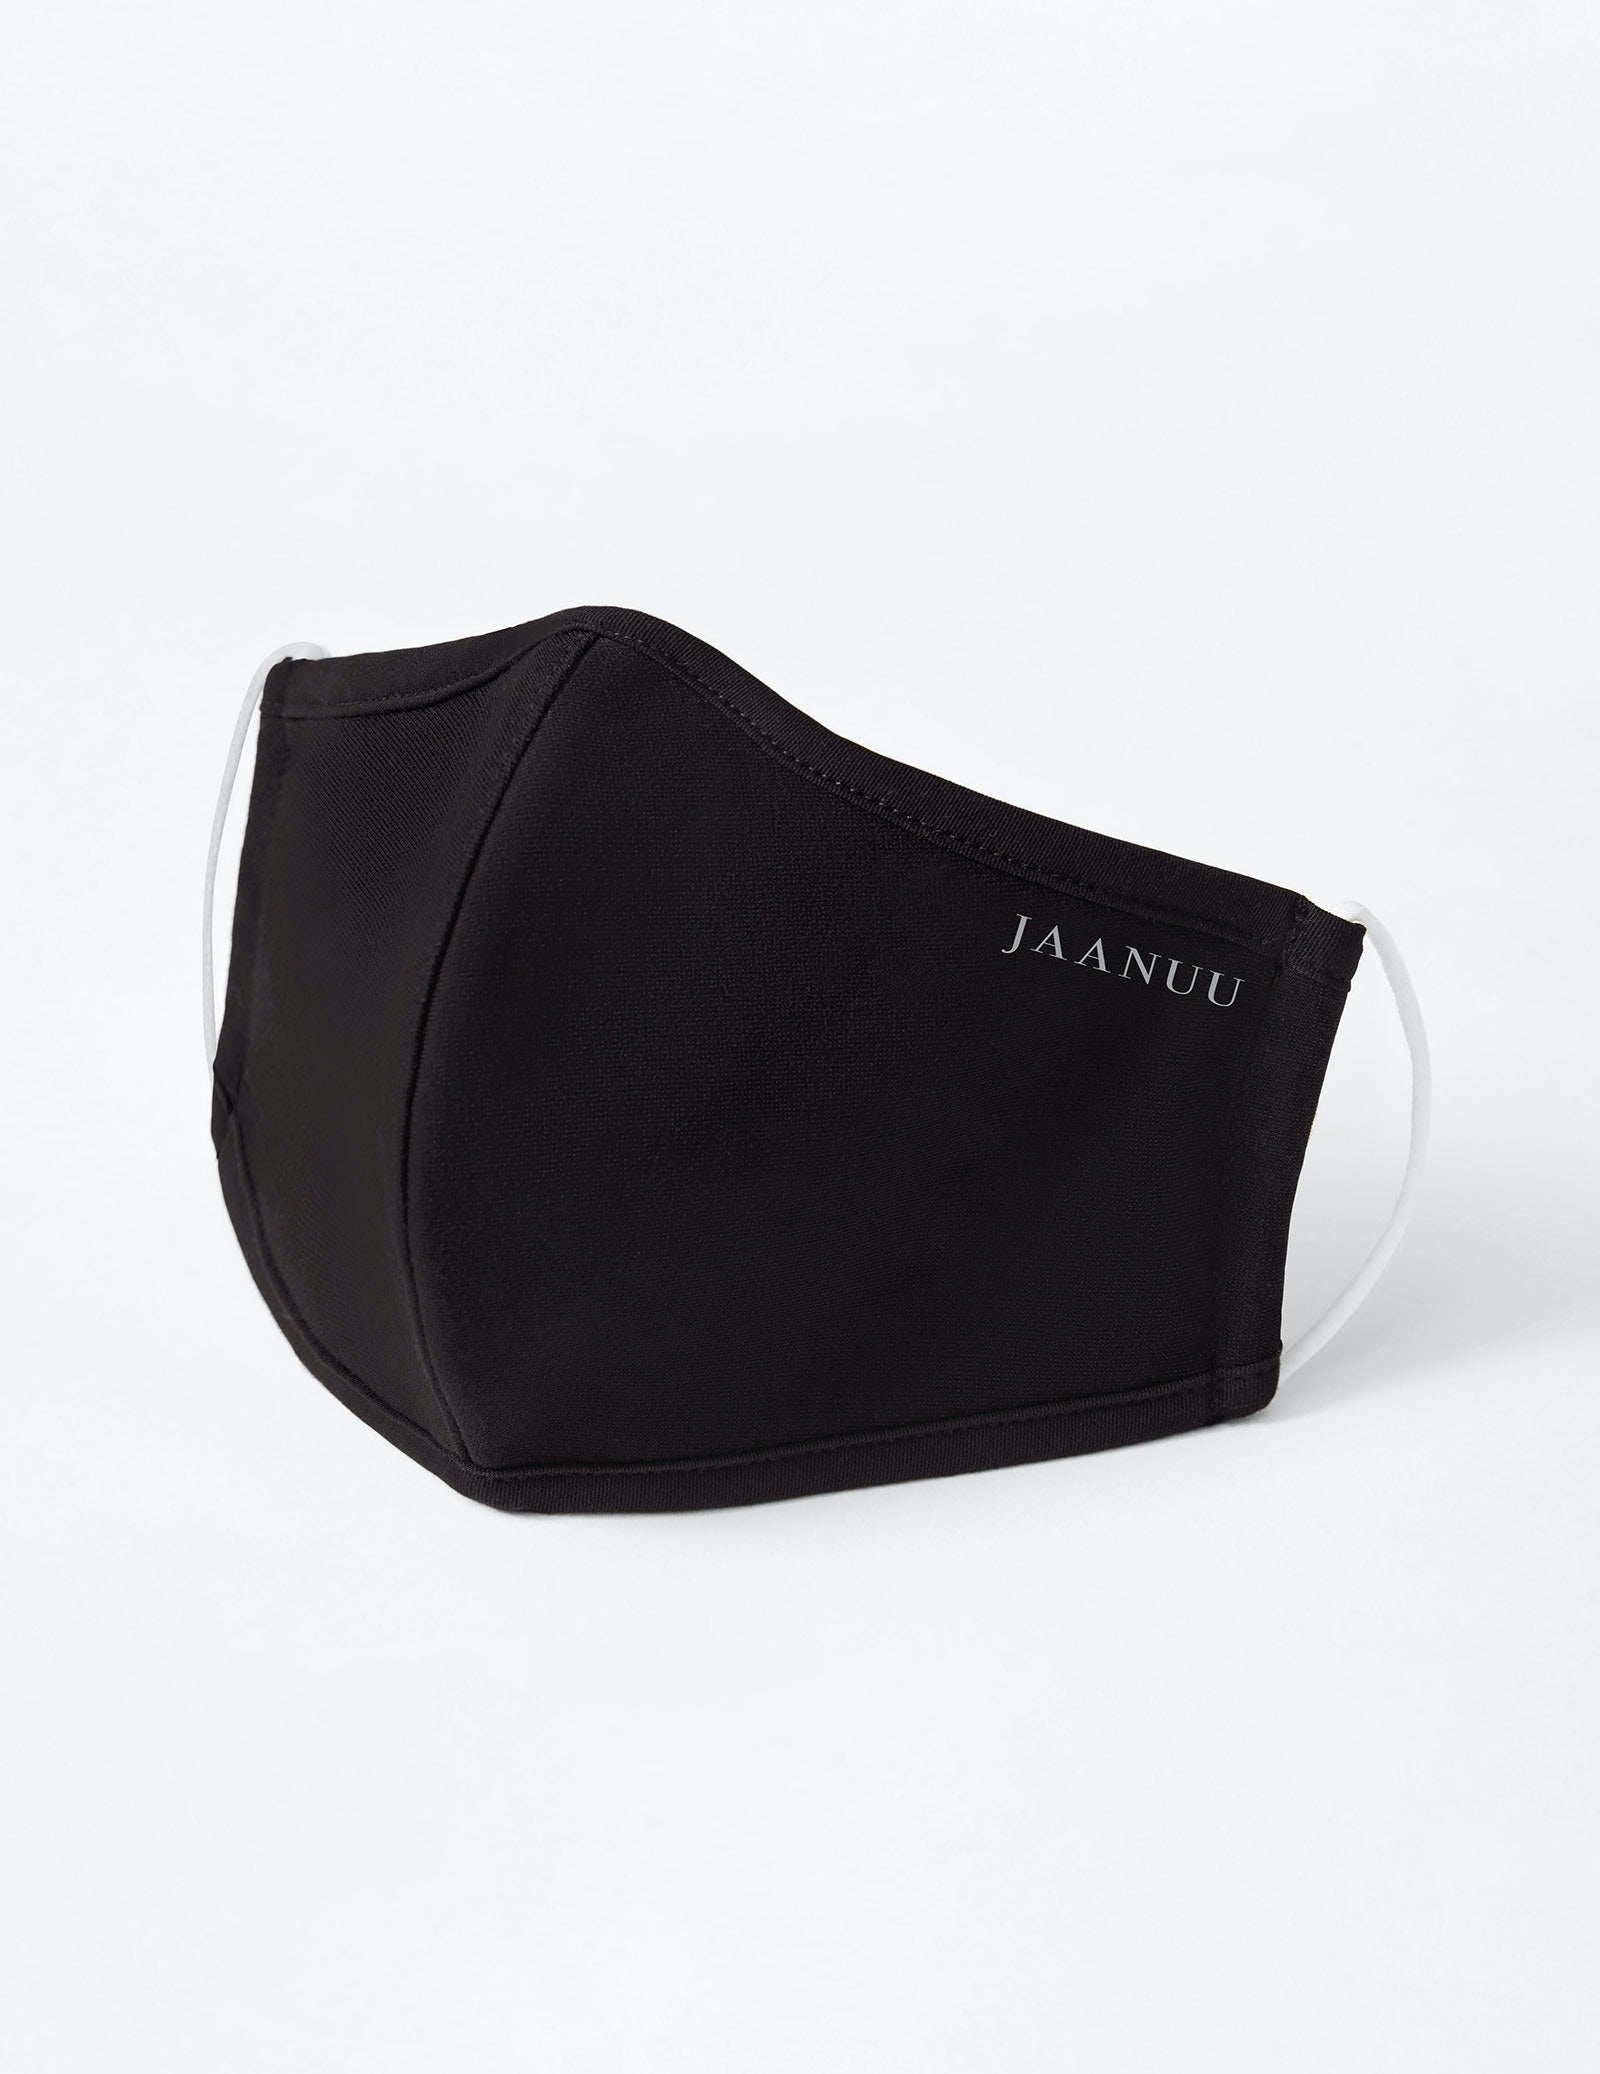 Reusable Antimicrobial Finished Adult Face Mask by *Jaanuu*